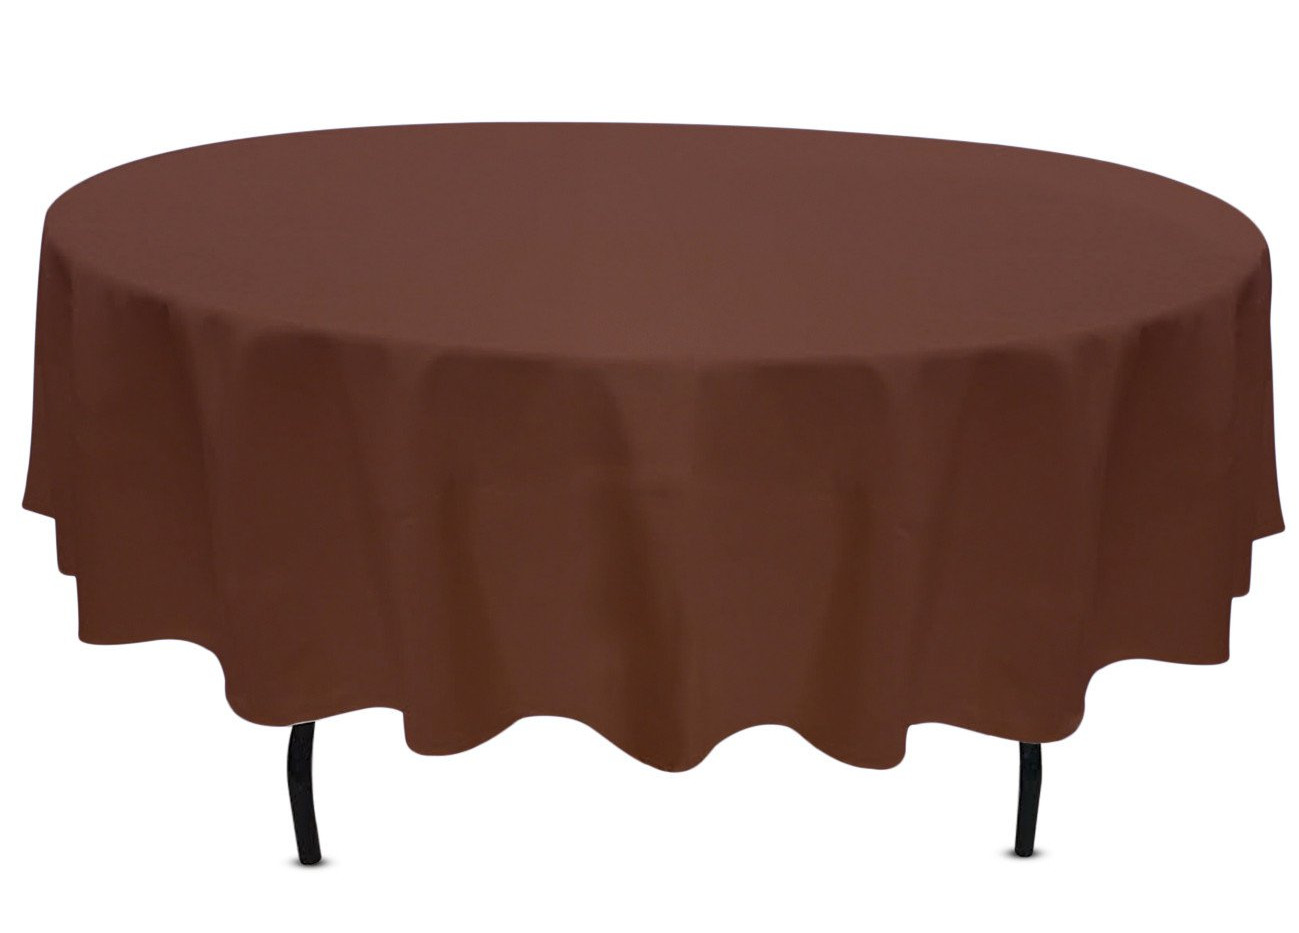 "90"" Round Brown Tablecloth"